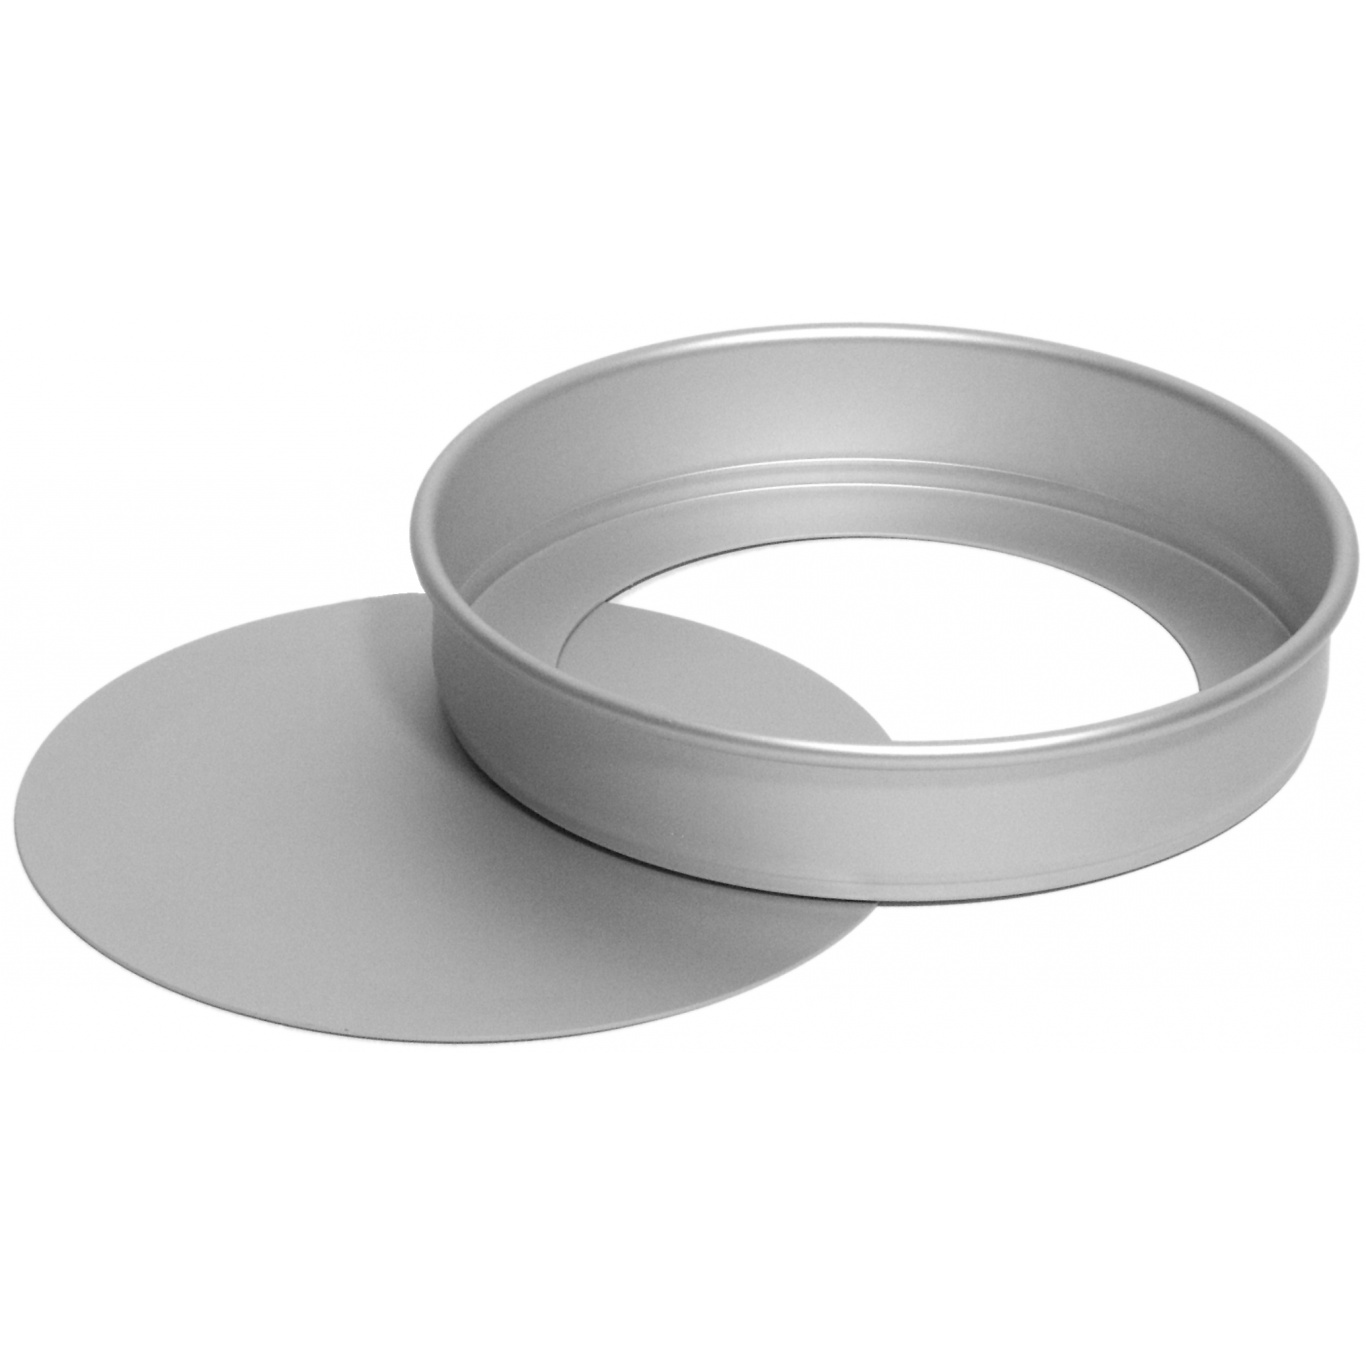 Image of Silverwood Round Sandwich Pan Loose Base 8ins/20cm